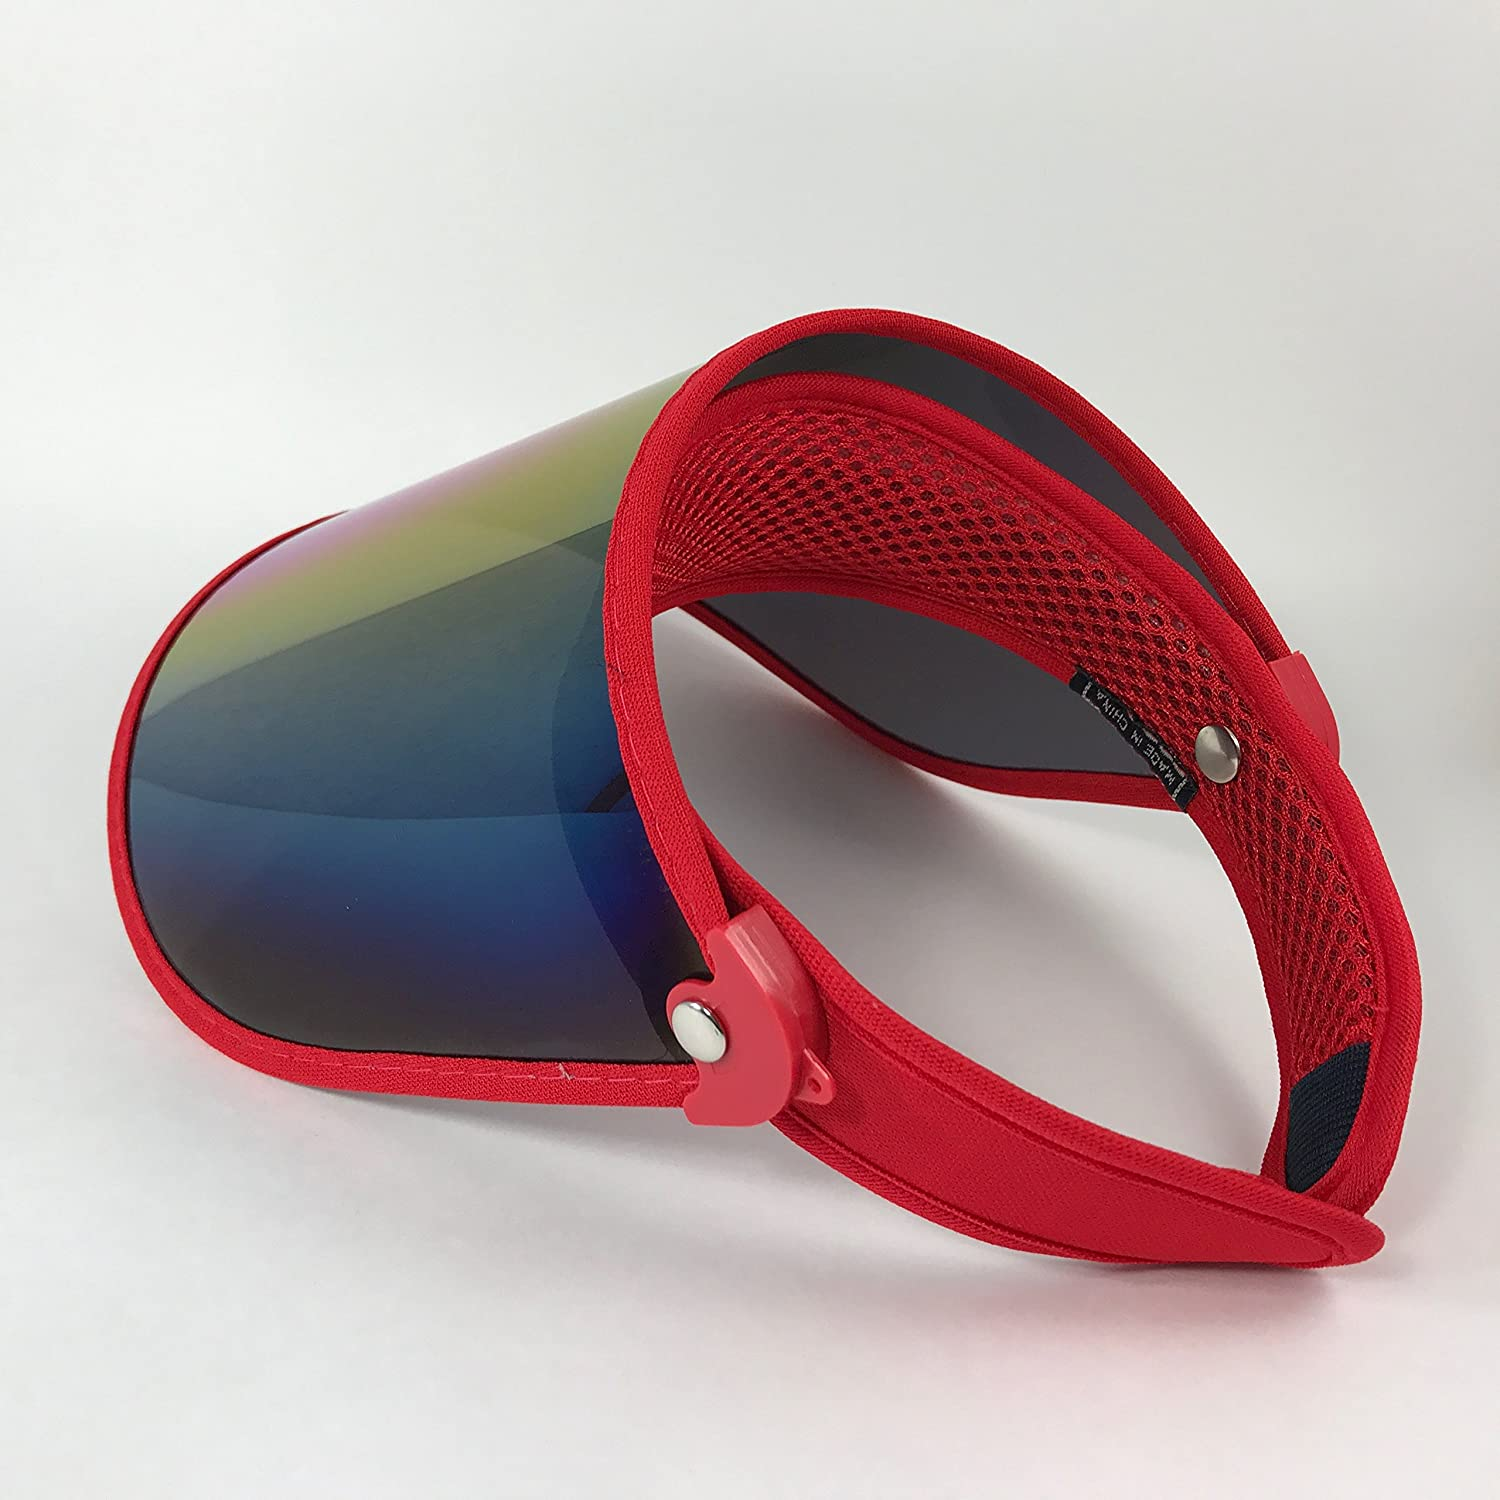 Amazon.com : Paparazzi Visor for Face Sun Protection (Shiny Transparent Plastic) - Adjustable Angle, One Size Fits Most (Torch Red) : Beauty